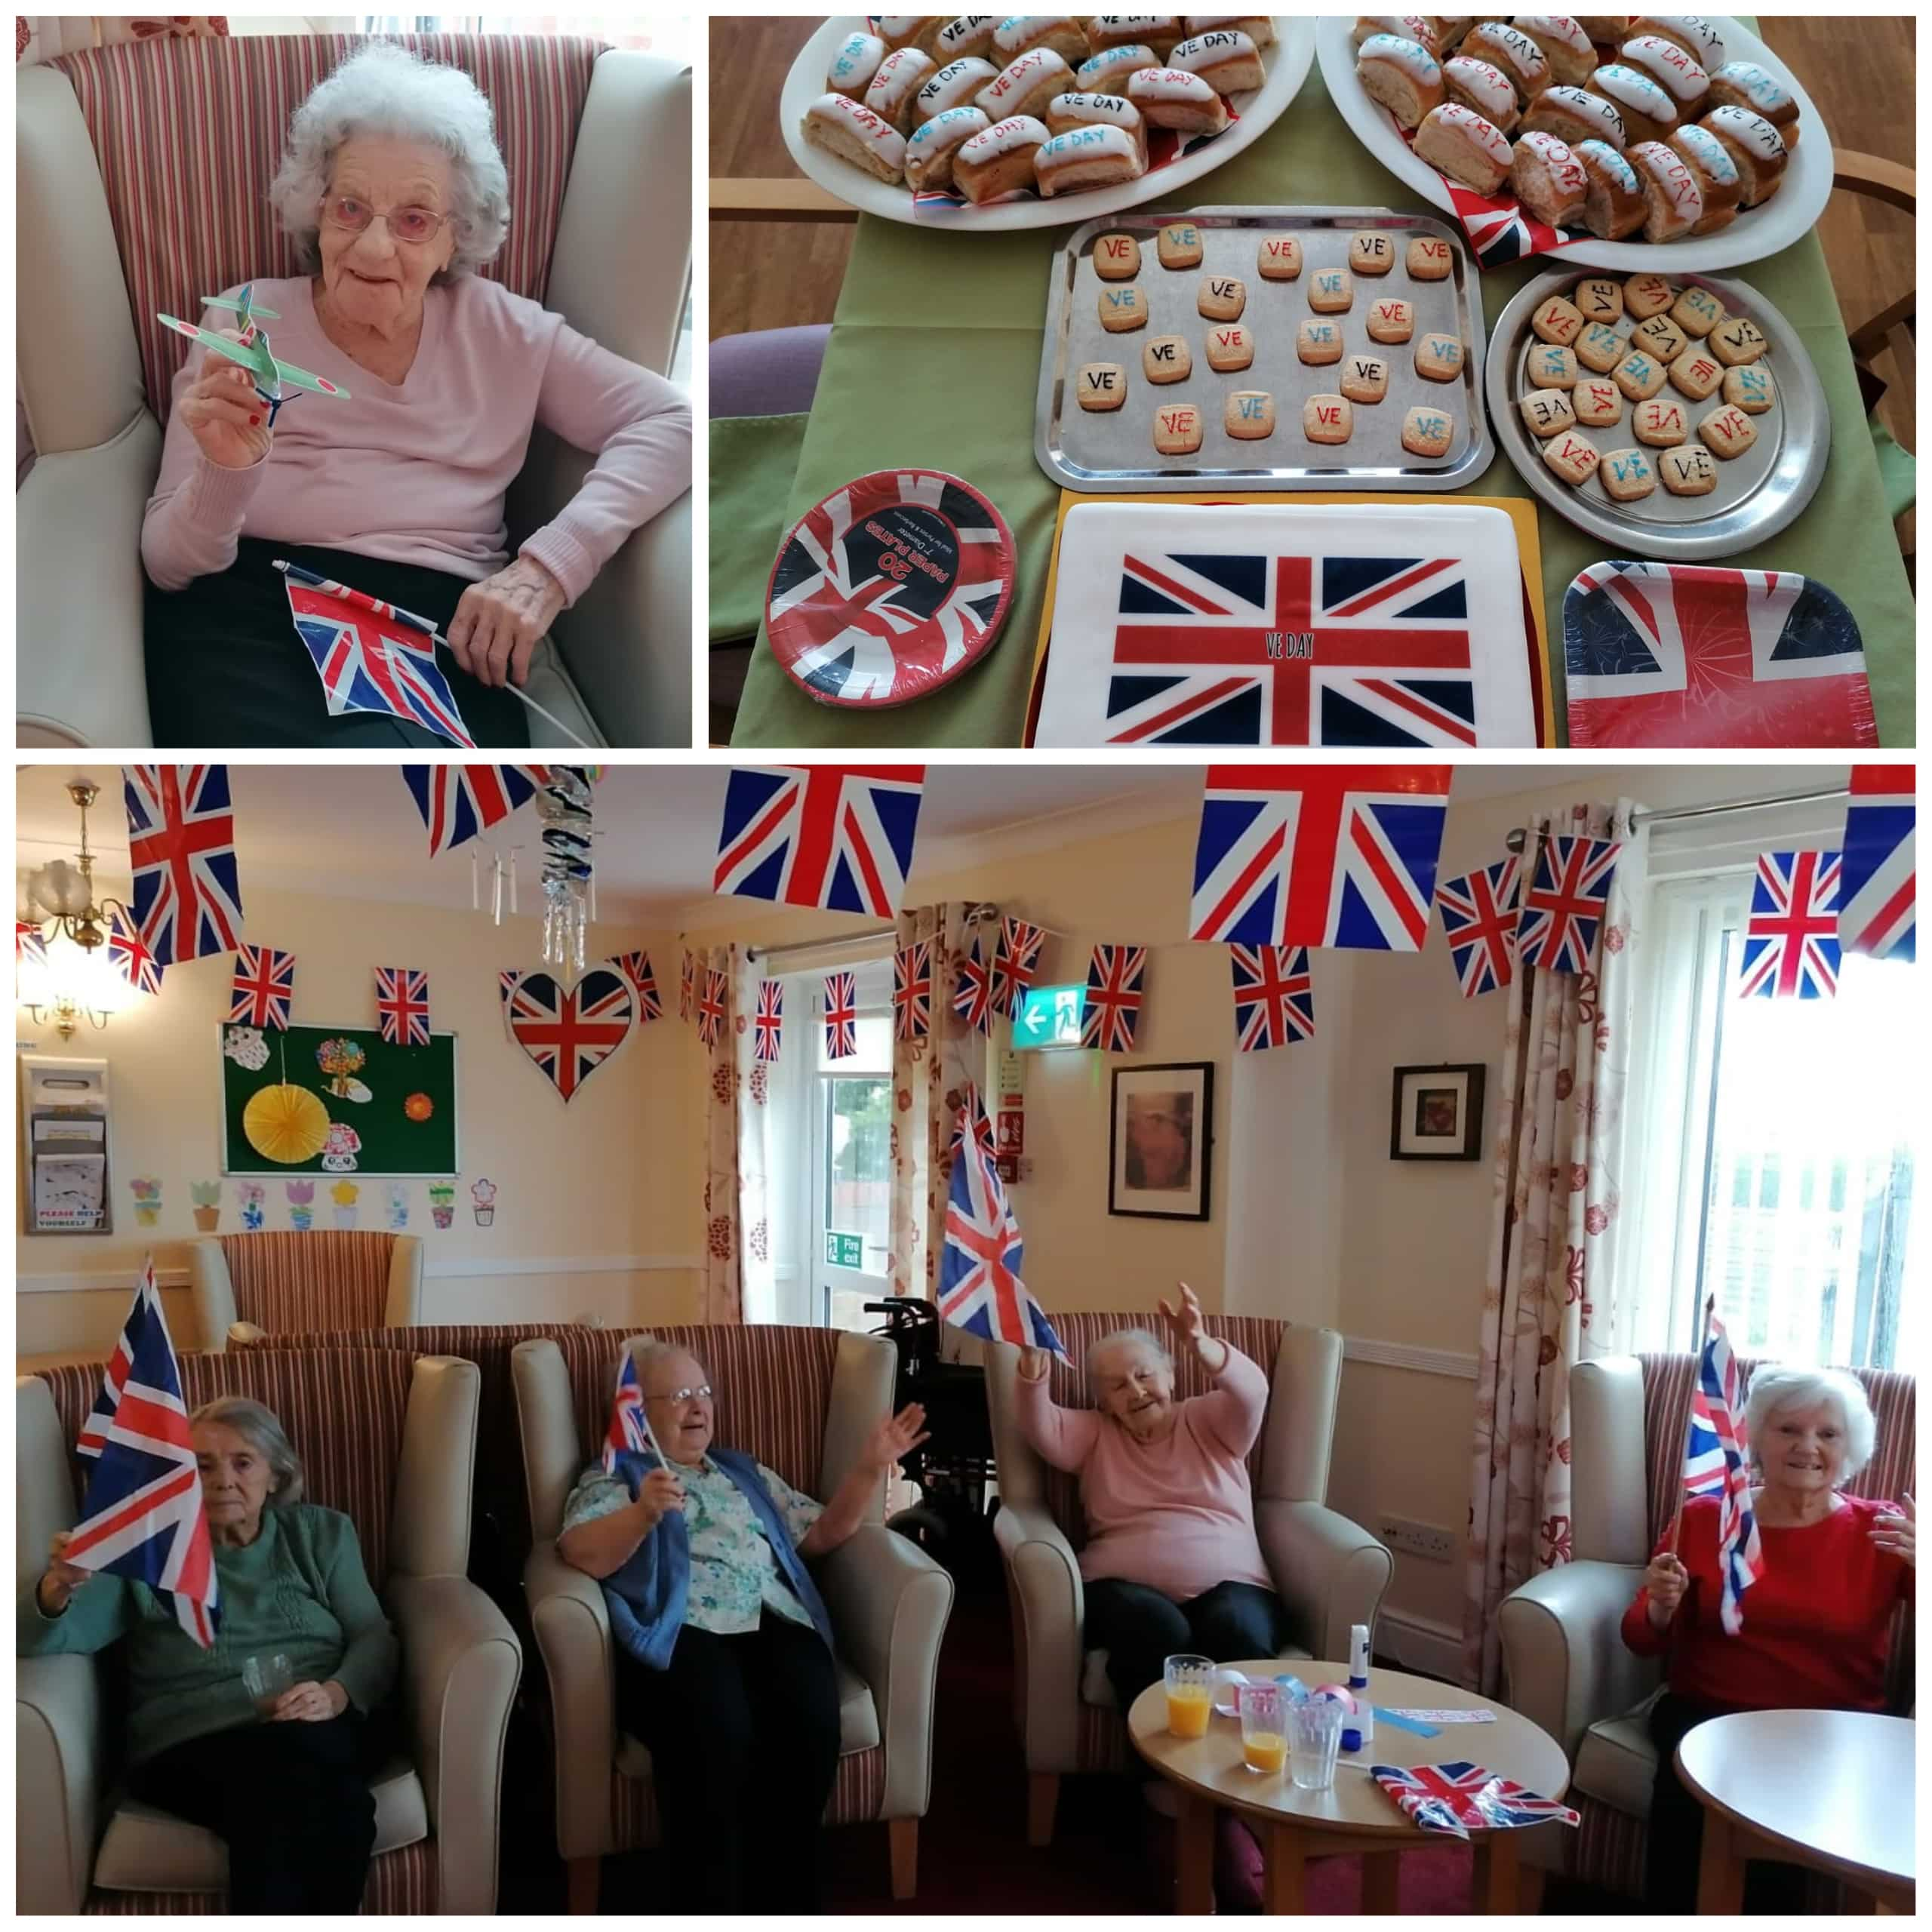 Residents at Atherton care home the Chanters celebrate VE Day with Union Jack bunting, cakes and toy gliders.